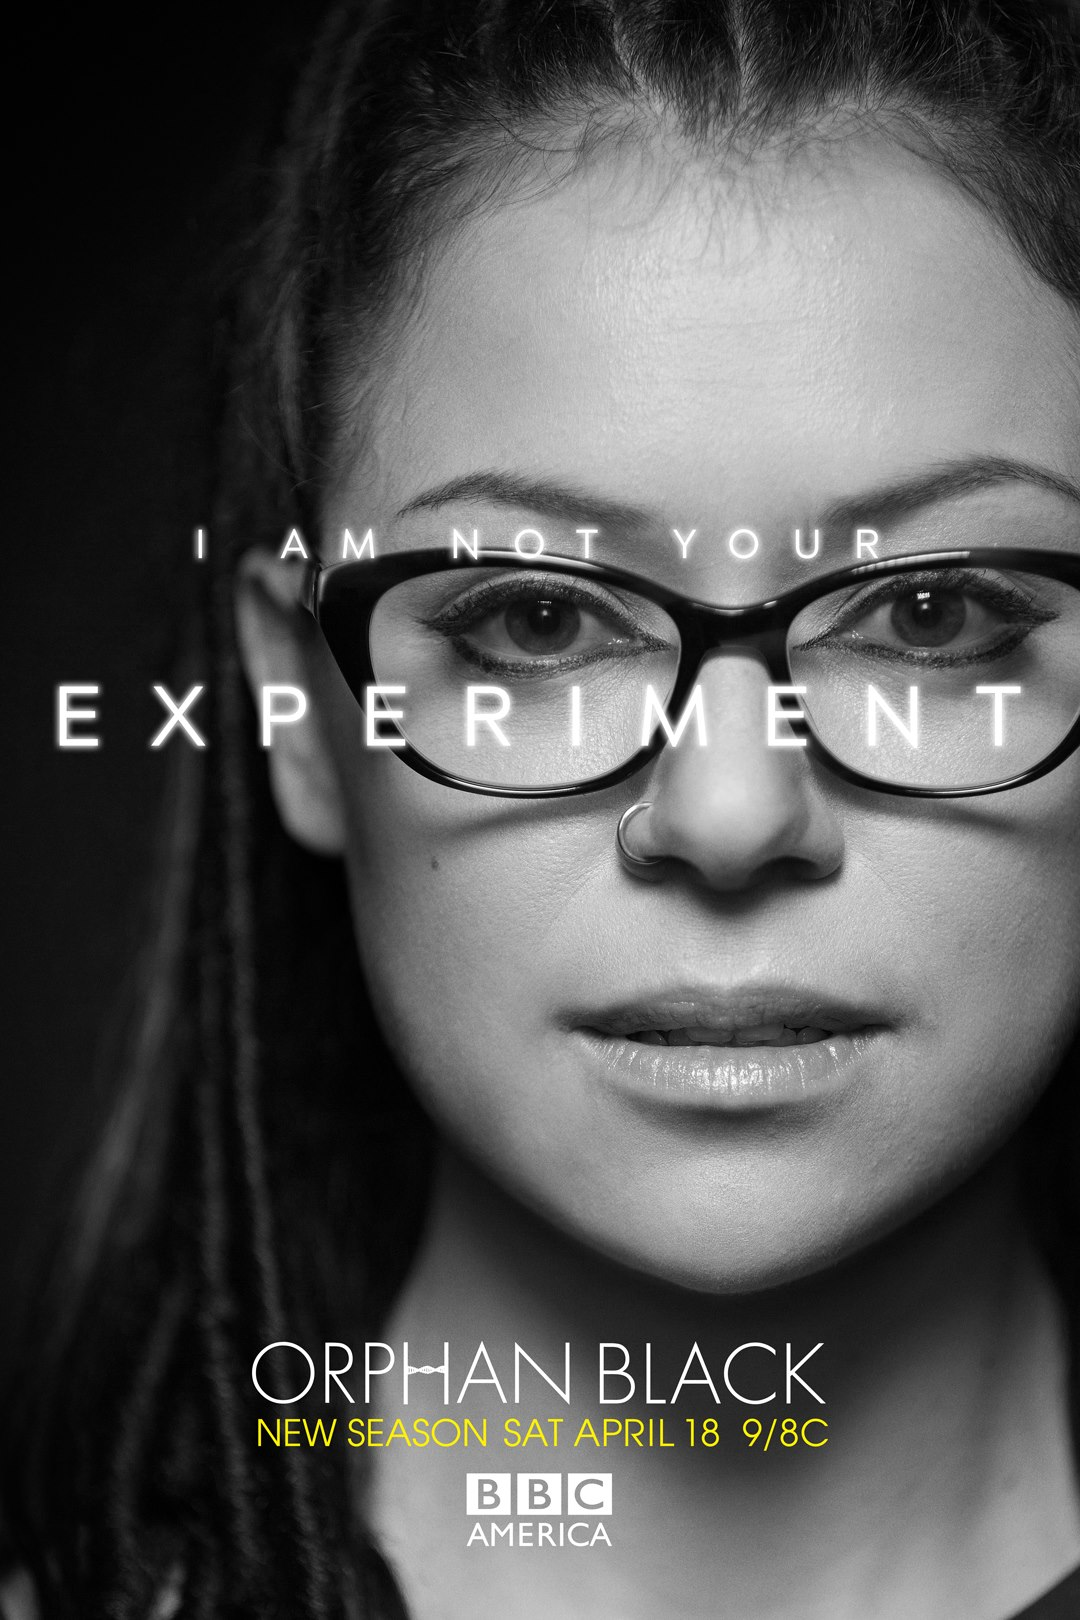 Orphan Black Poster Check Out The Latest O...